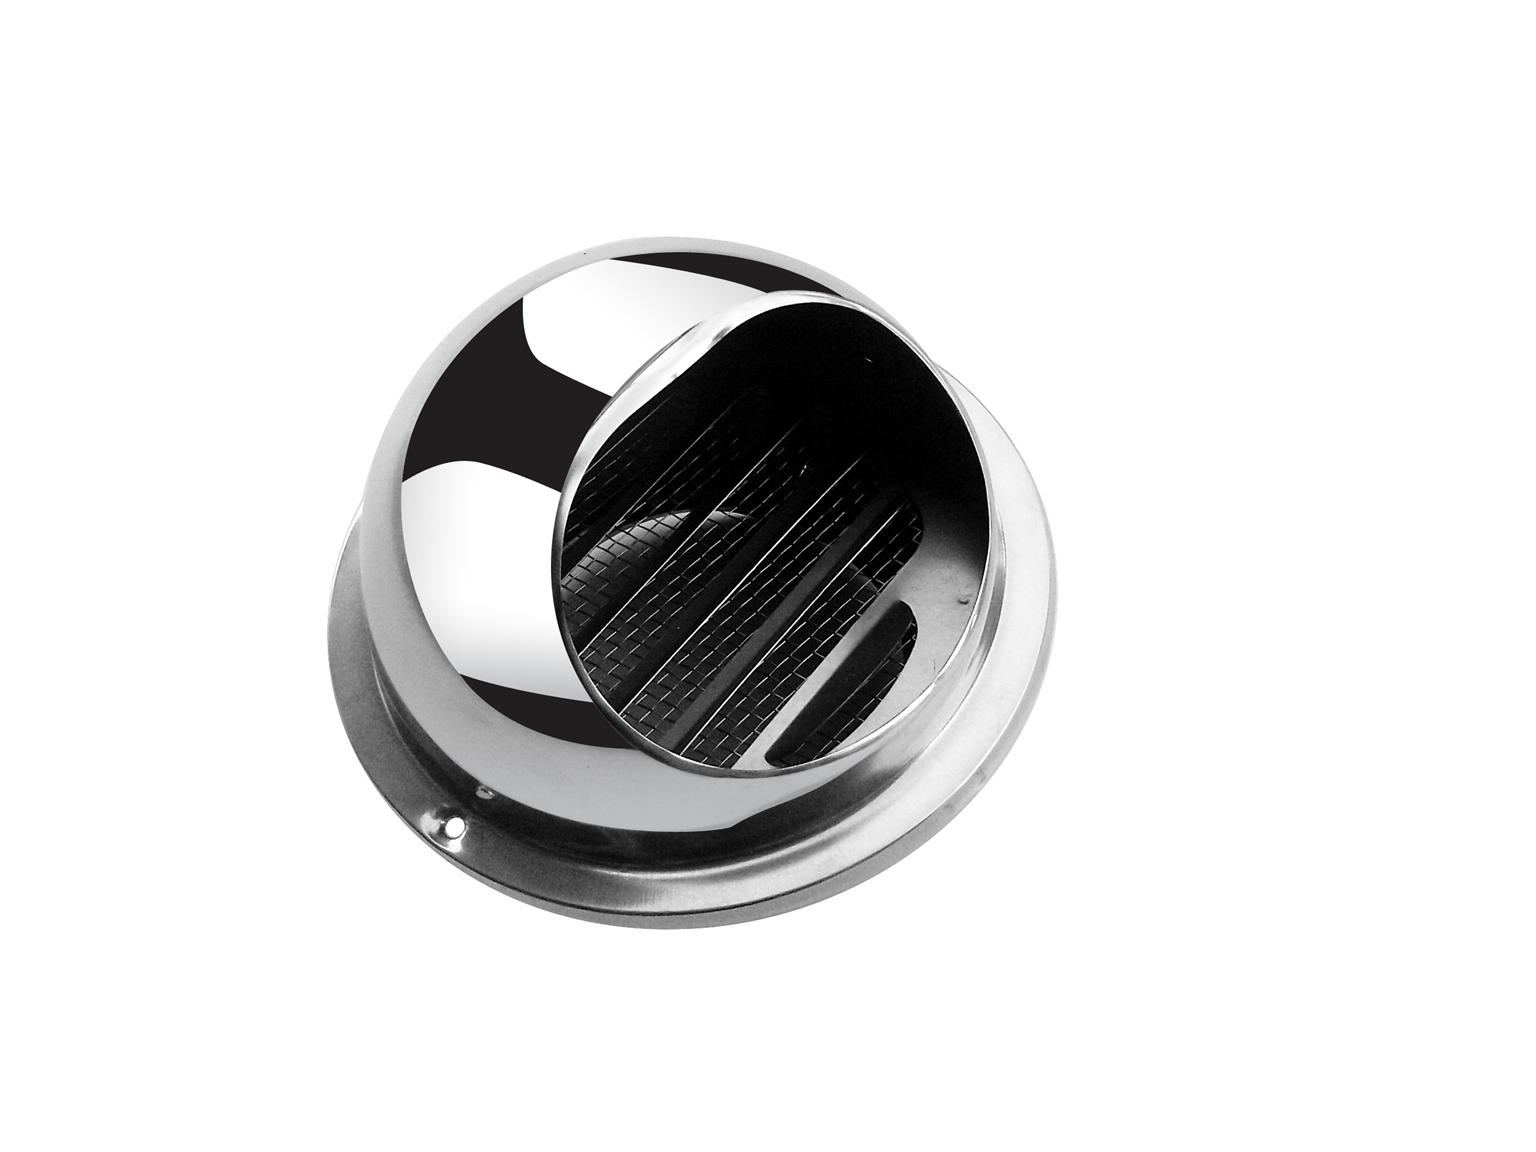 6 INCHES STAINLESS STEEL VENTILATION DUCTING CAP (FREE GIFT see store)